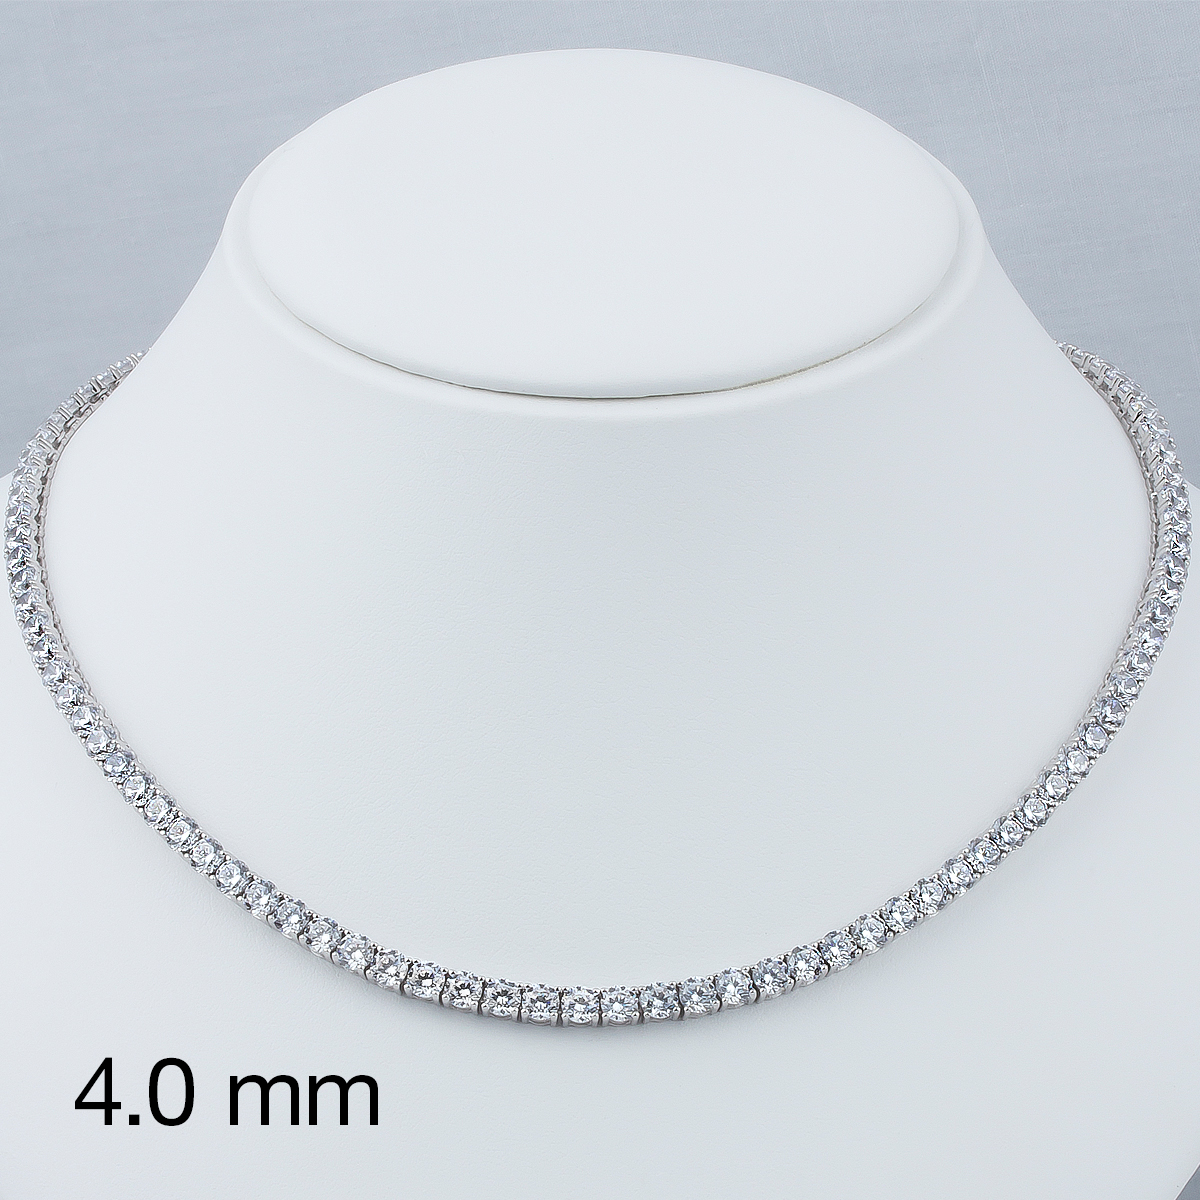 Classic Round Cubic Zirconia Eternity Tennis Necklace with 4.0mm Stones